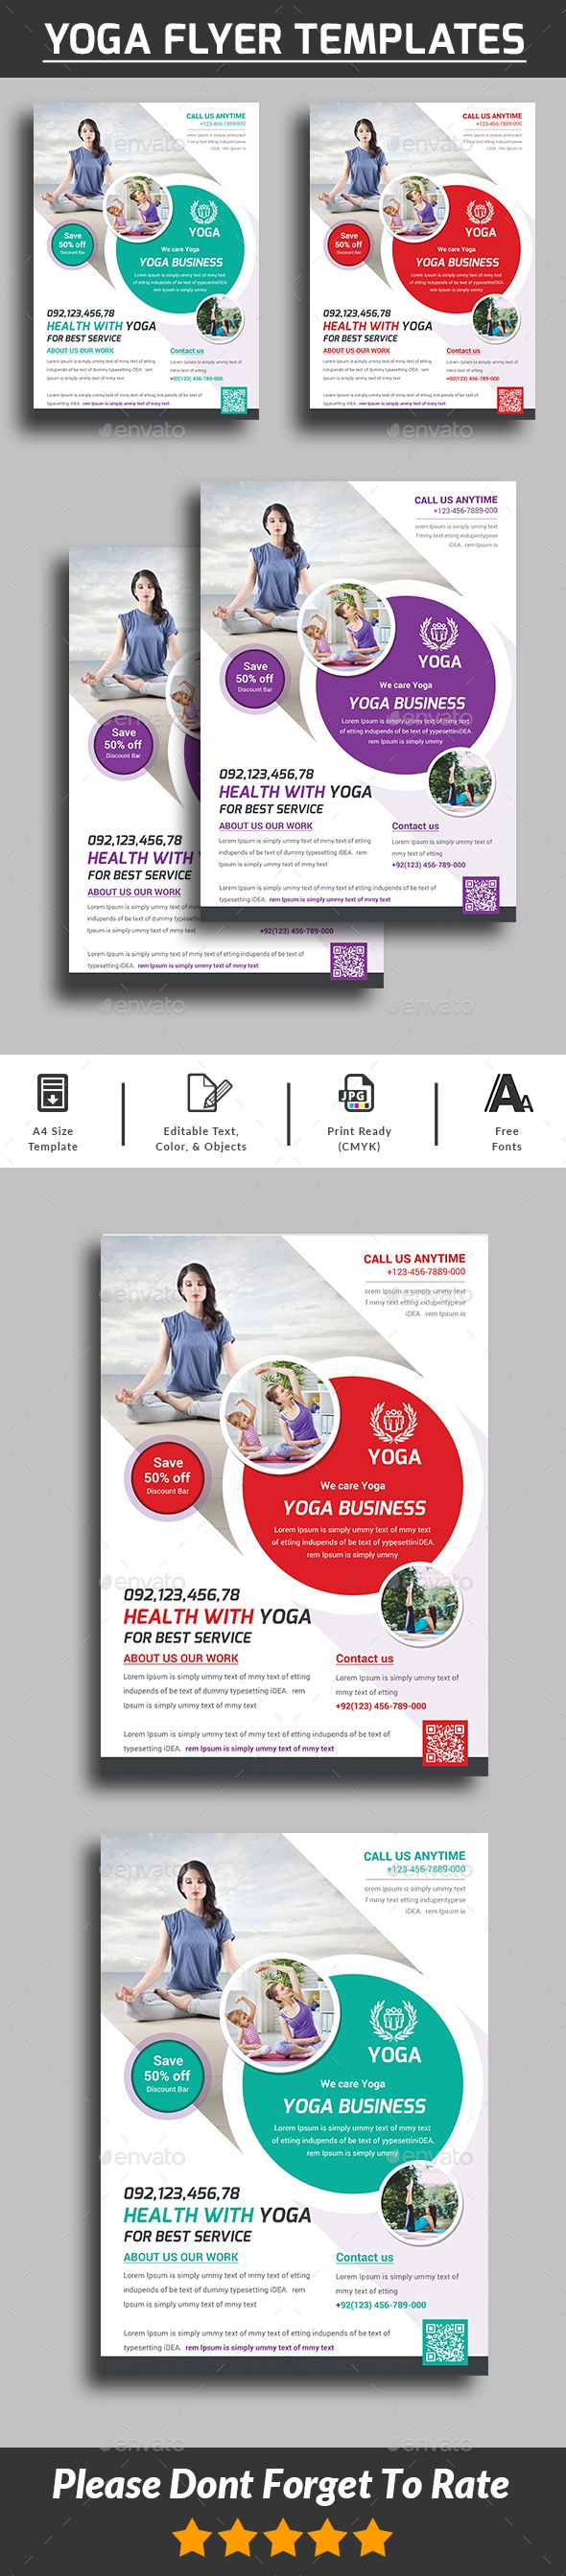 Yoga Flyer  is a professional, clean, & creative Yoga Flyer template designed to make a good impression.  ................................................  Features :  - Editable in adobe photoshop  - Professional design  - Uses free fonts  - All objects, colo